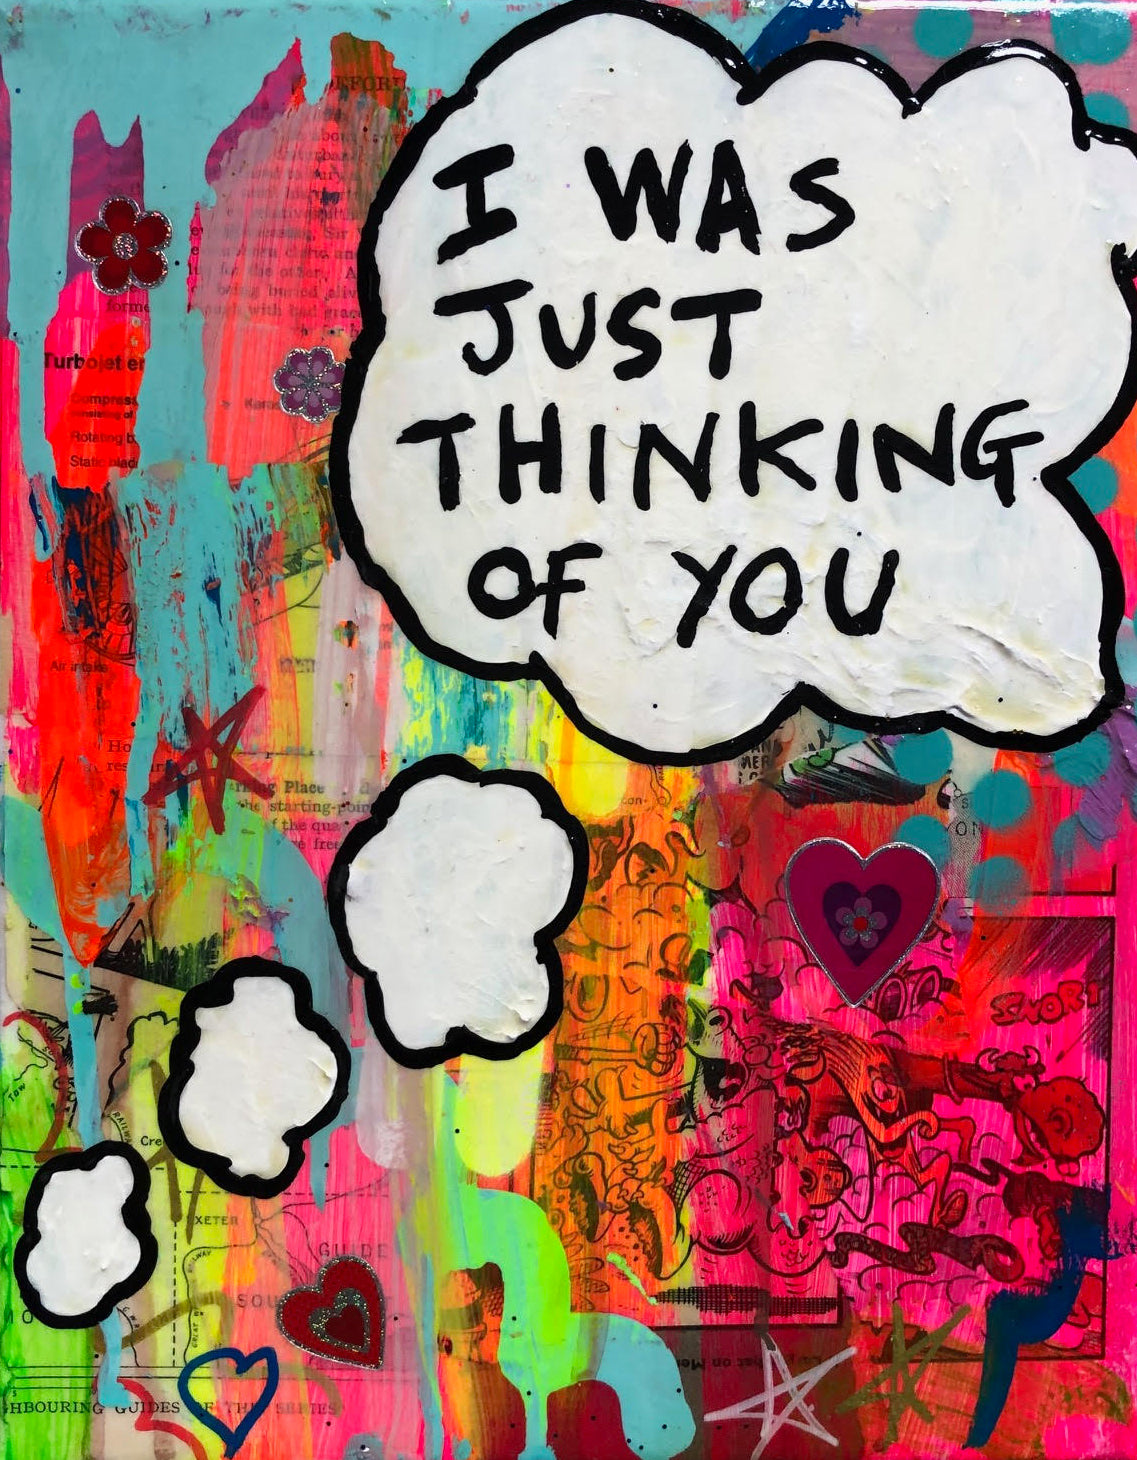 Thinking of you by Barrie J Davies 2019, Mixed media on Canvas, 20cm x 25cm, Unframed